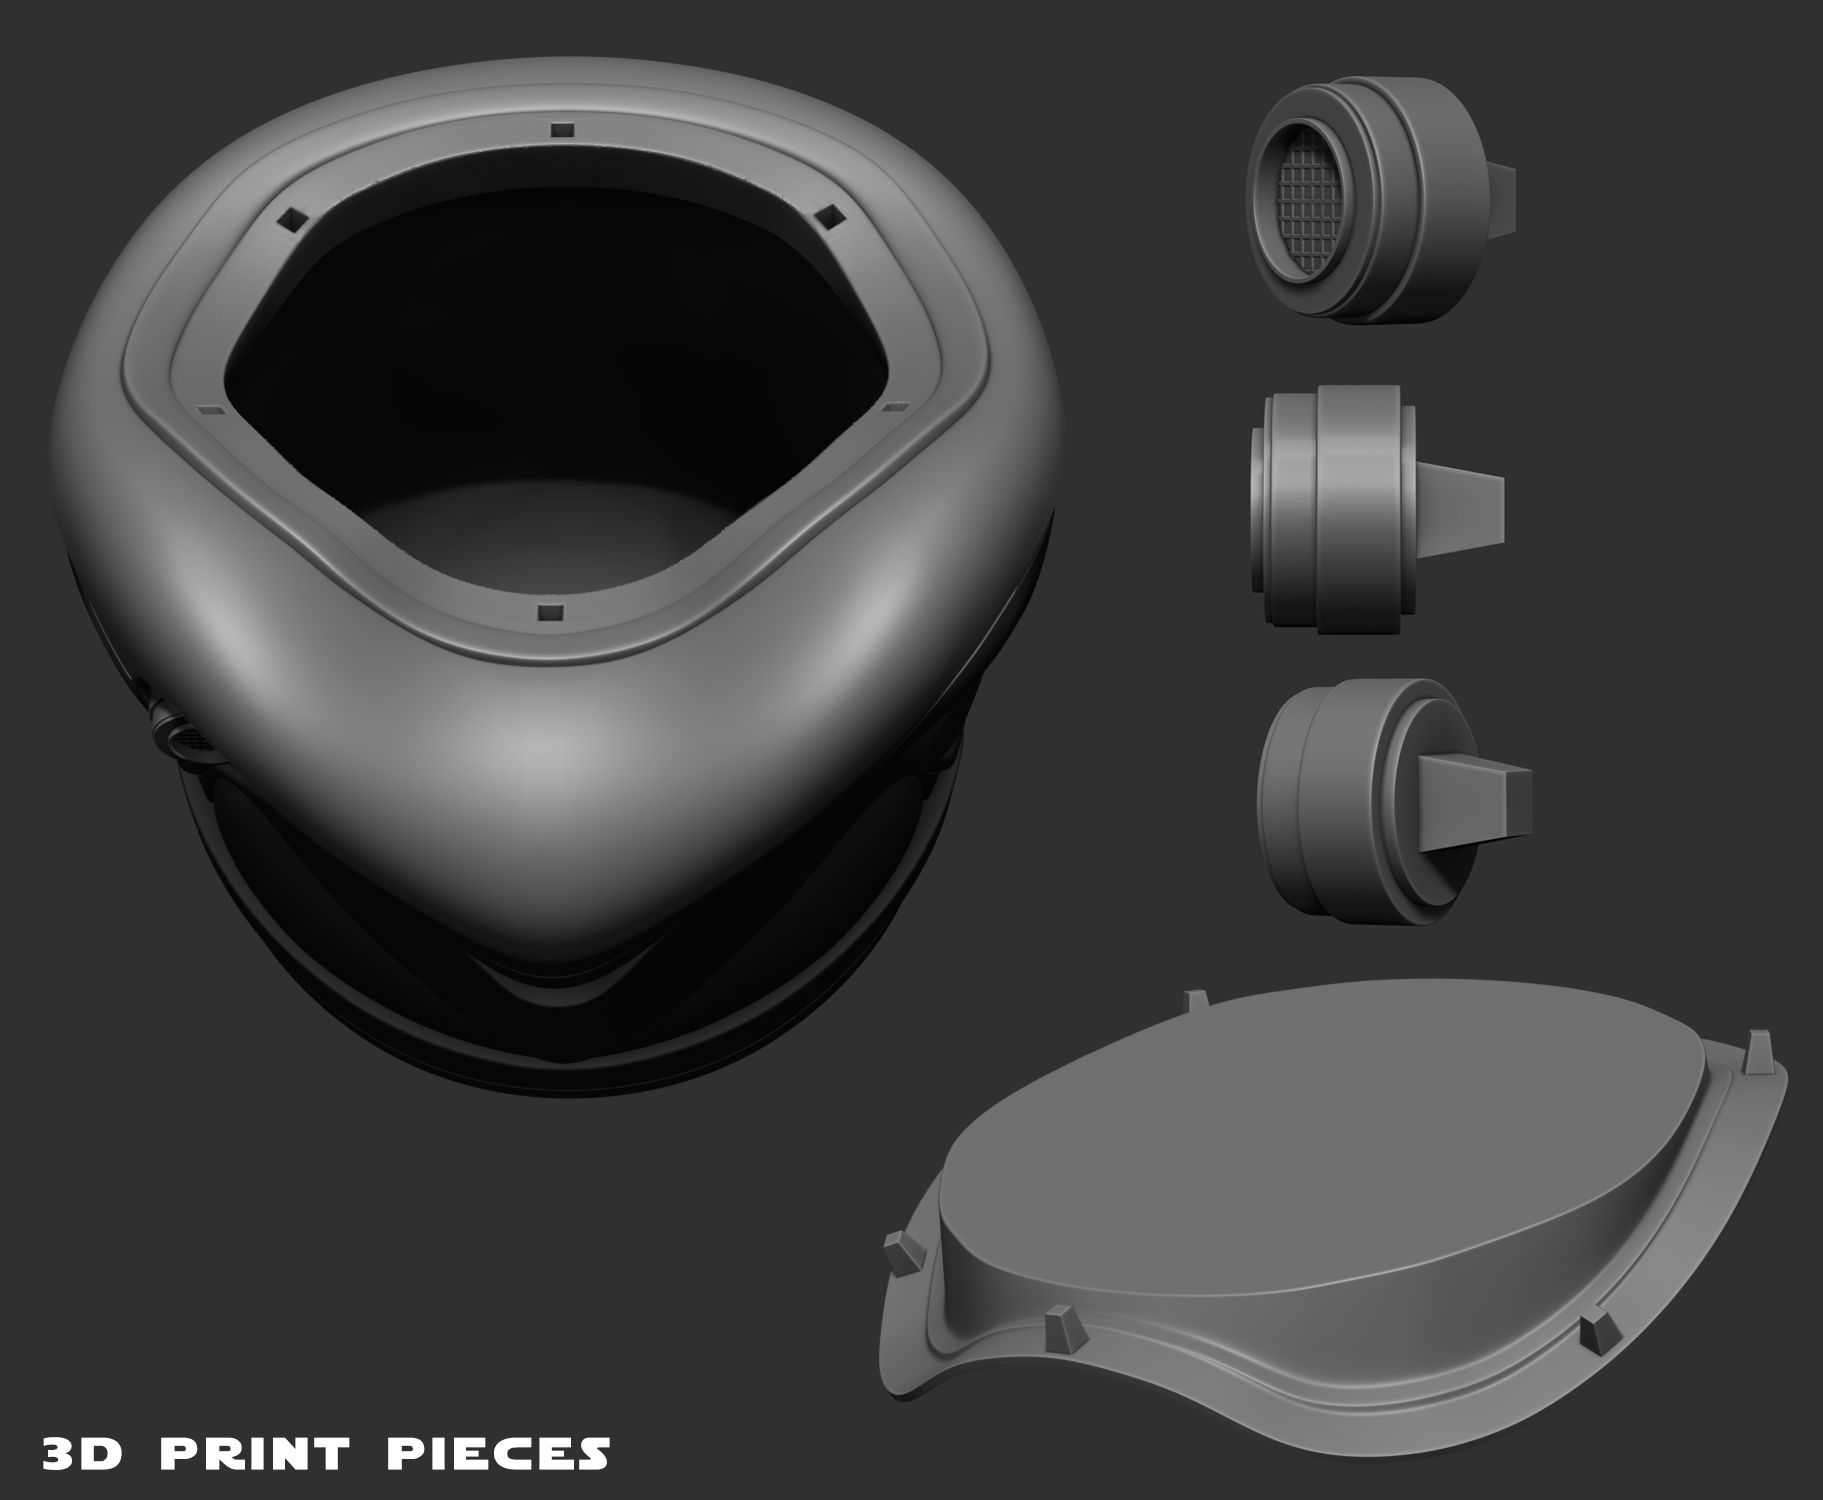 For fun I wanted to prep this model for 3D printing. Maybe soon I will send it off to the printers.